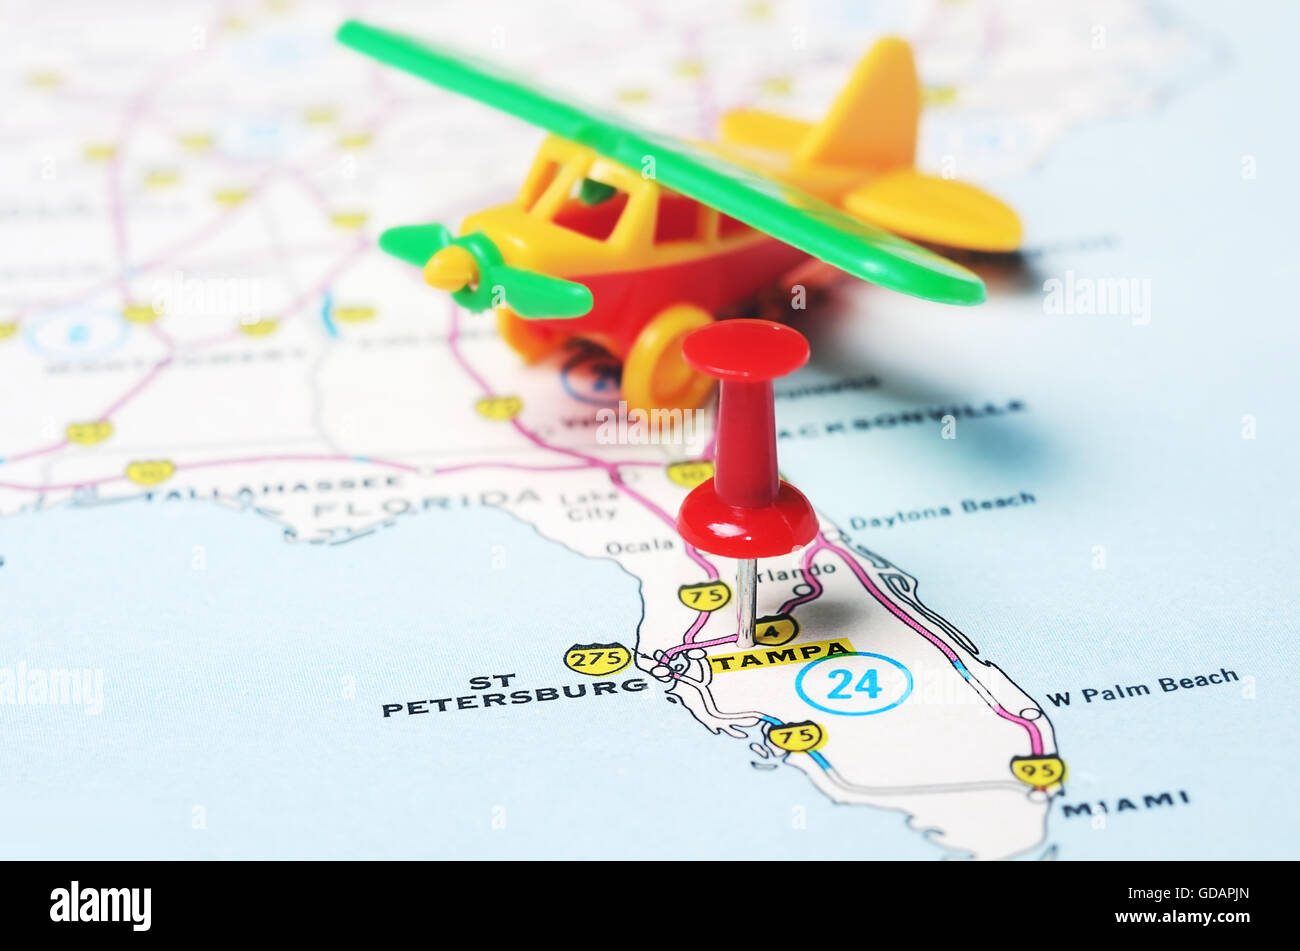 Tampa Florida Usa Map.Close Up Of Tampa Florida Usa Map With Red Pin And Airplane Toy